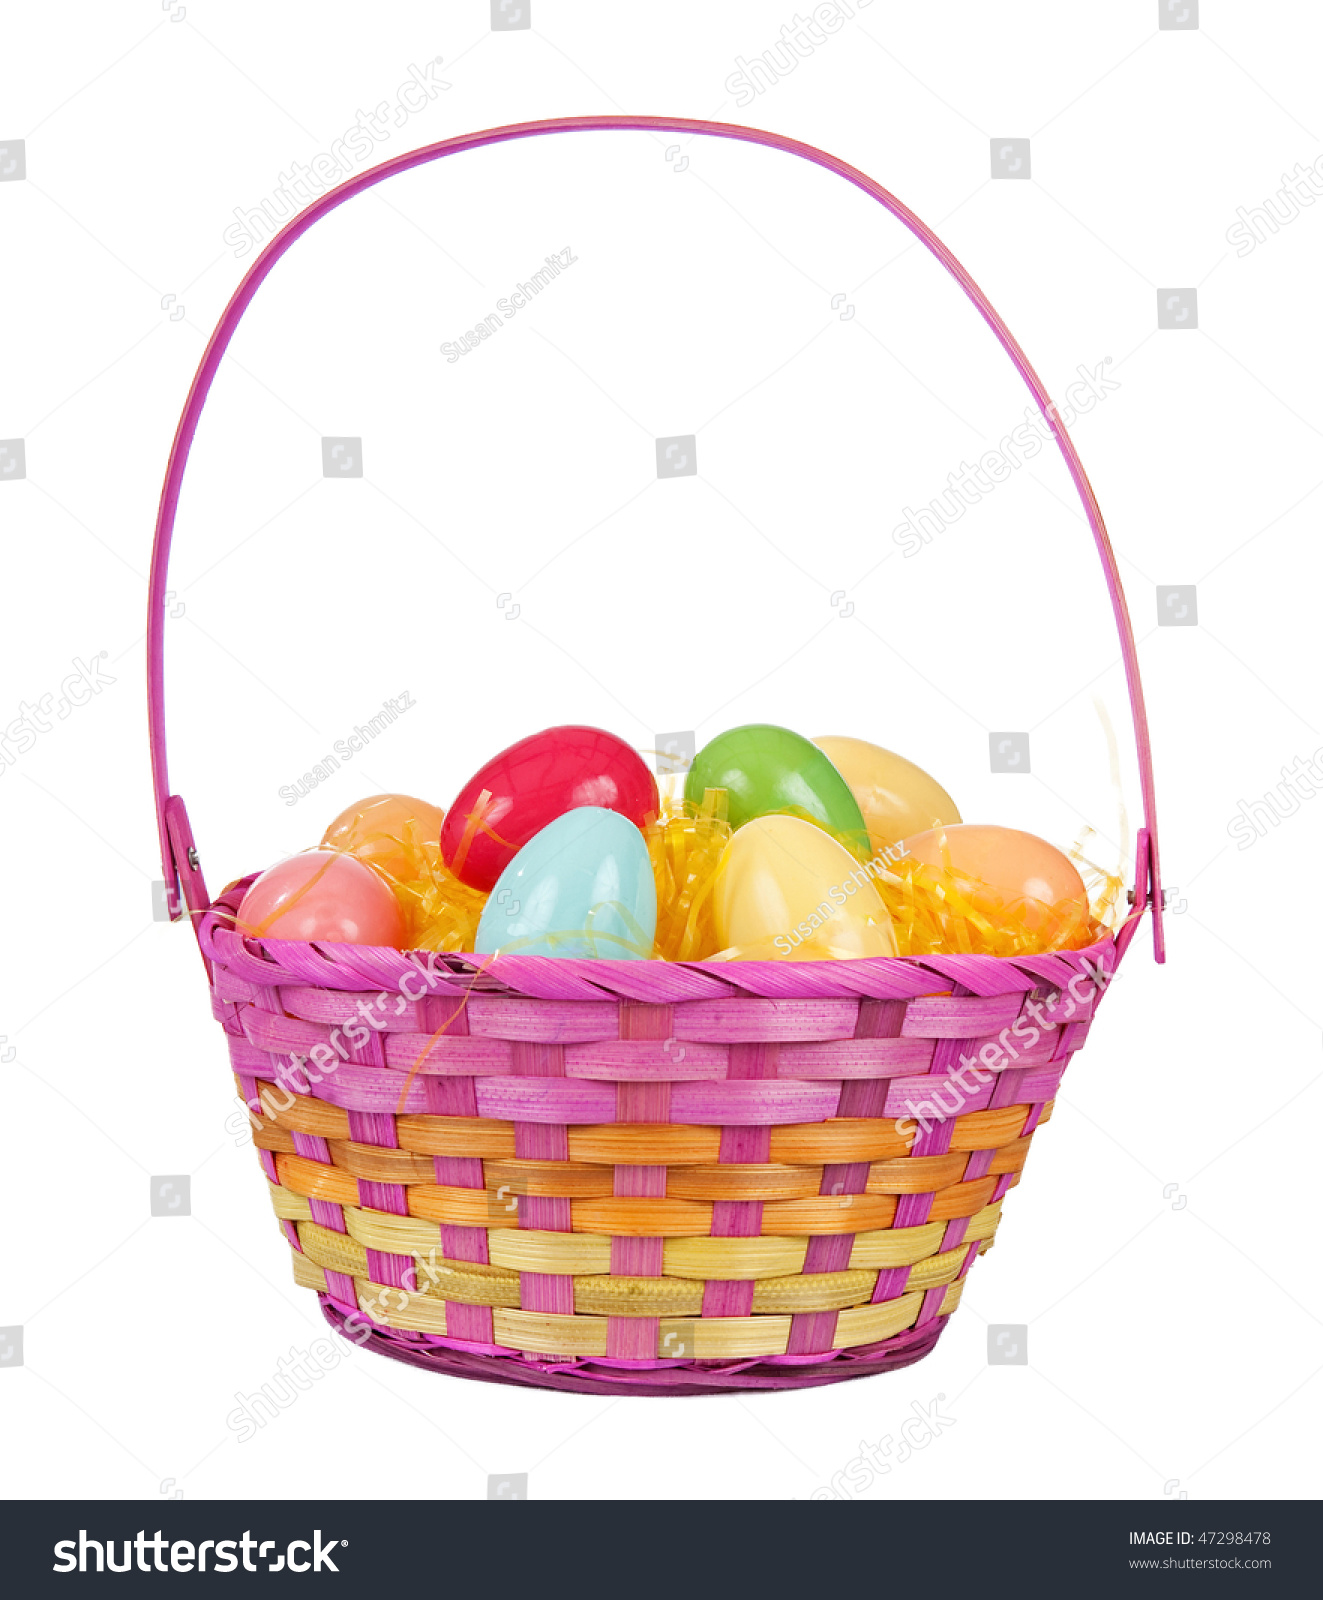 Pink Woven Easter Basket With Plastic Eggs